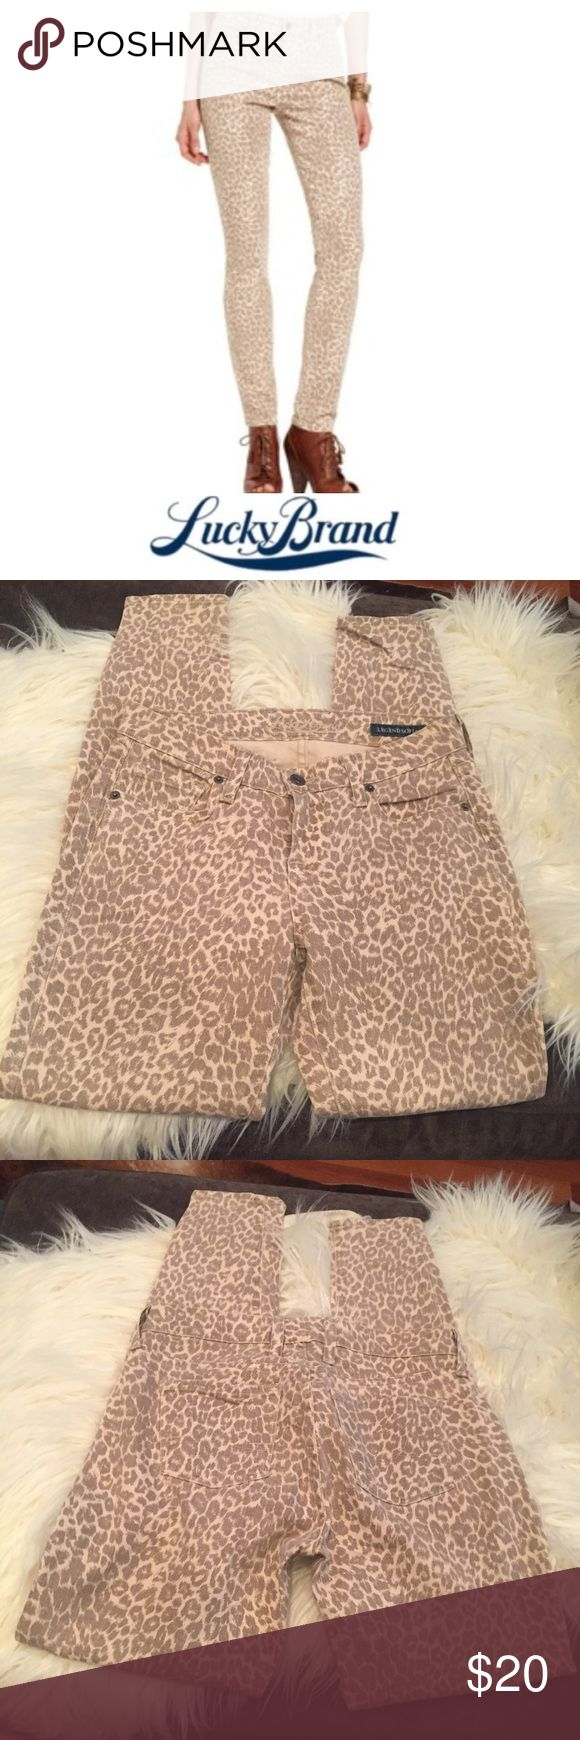 Lucky Brand Legend Sofia Leopard Print Skinny Jean Lucky Brand Legend Sofia Leopard Print Skinny Jean. 29 inch inseam. Ankle. 8 inch rise, mid rise. Gently worn. Great condition. Size 25 which is a 0. Feel free to make an offer or bundle & save! Lucky Brand Jeans Skinny